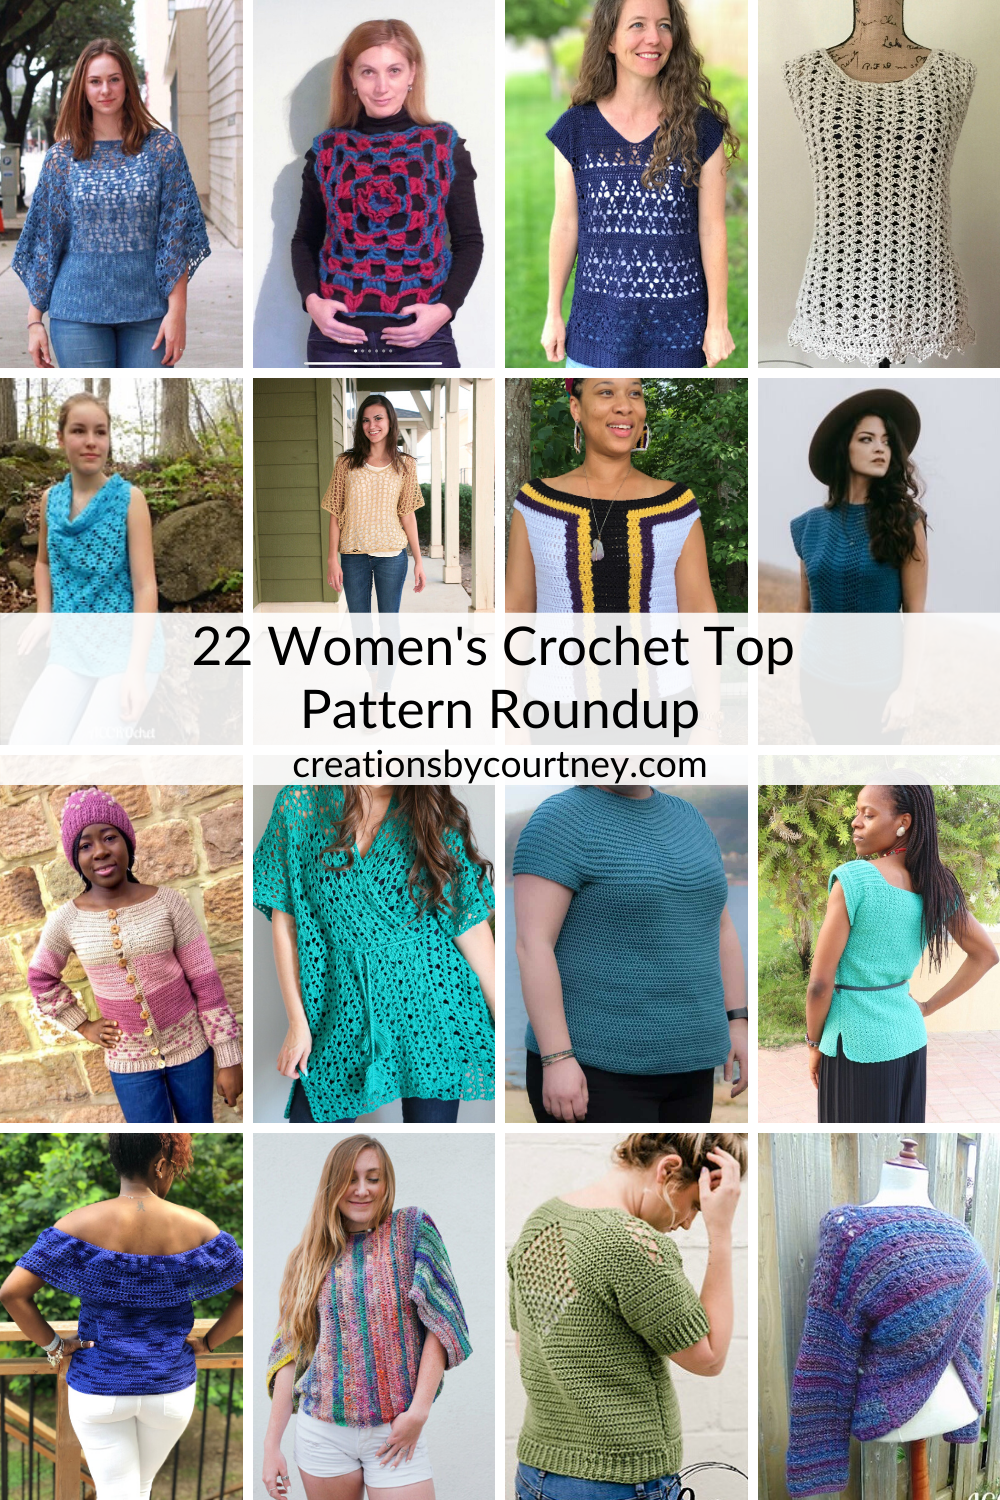 Check out this collection of 22 crochet top patterns. There's an option for every style with lacy layering pieces, texture, and more. #crochetclothing #crochetwomenclothing #patternroundup